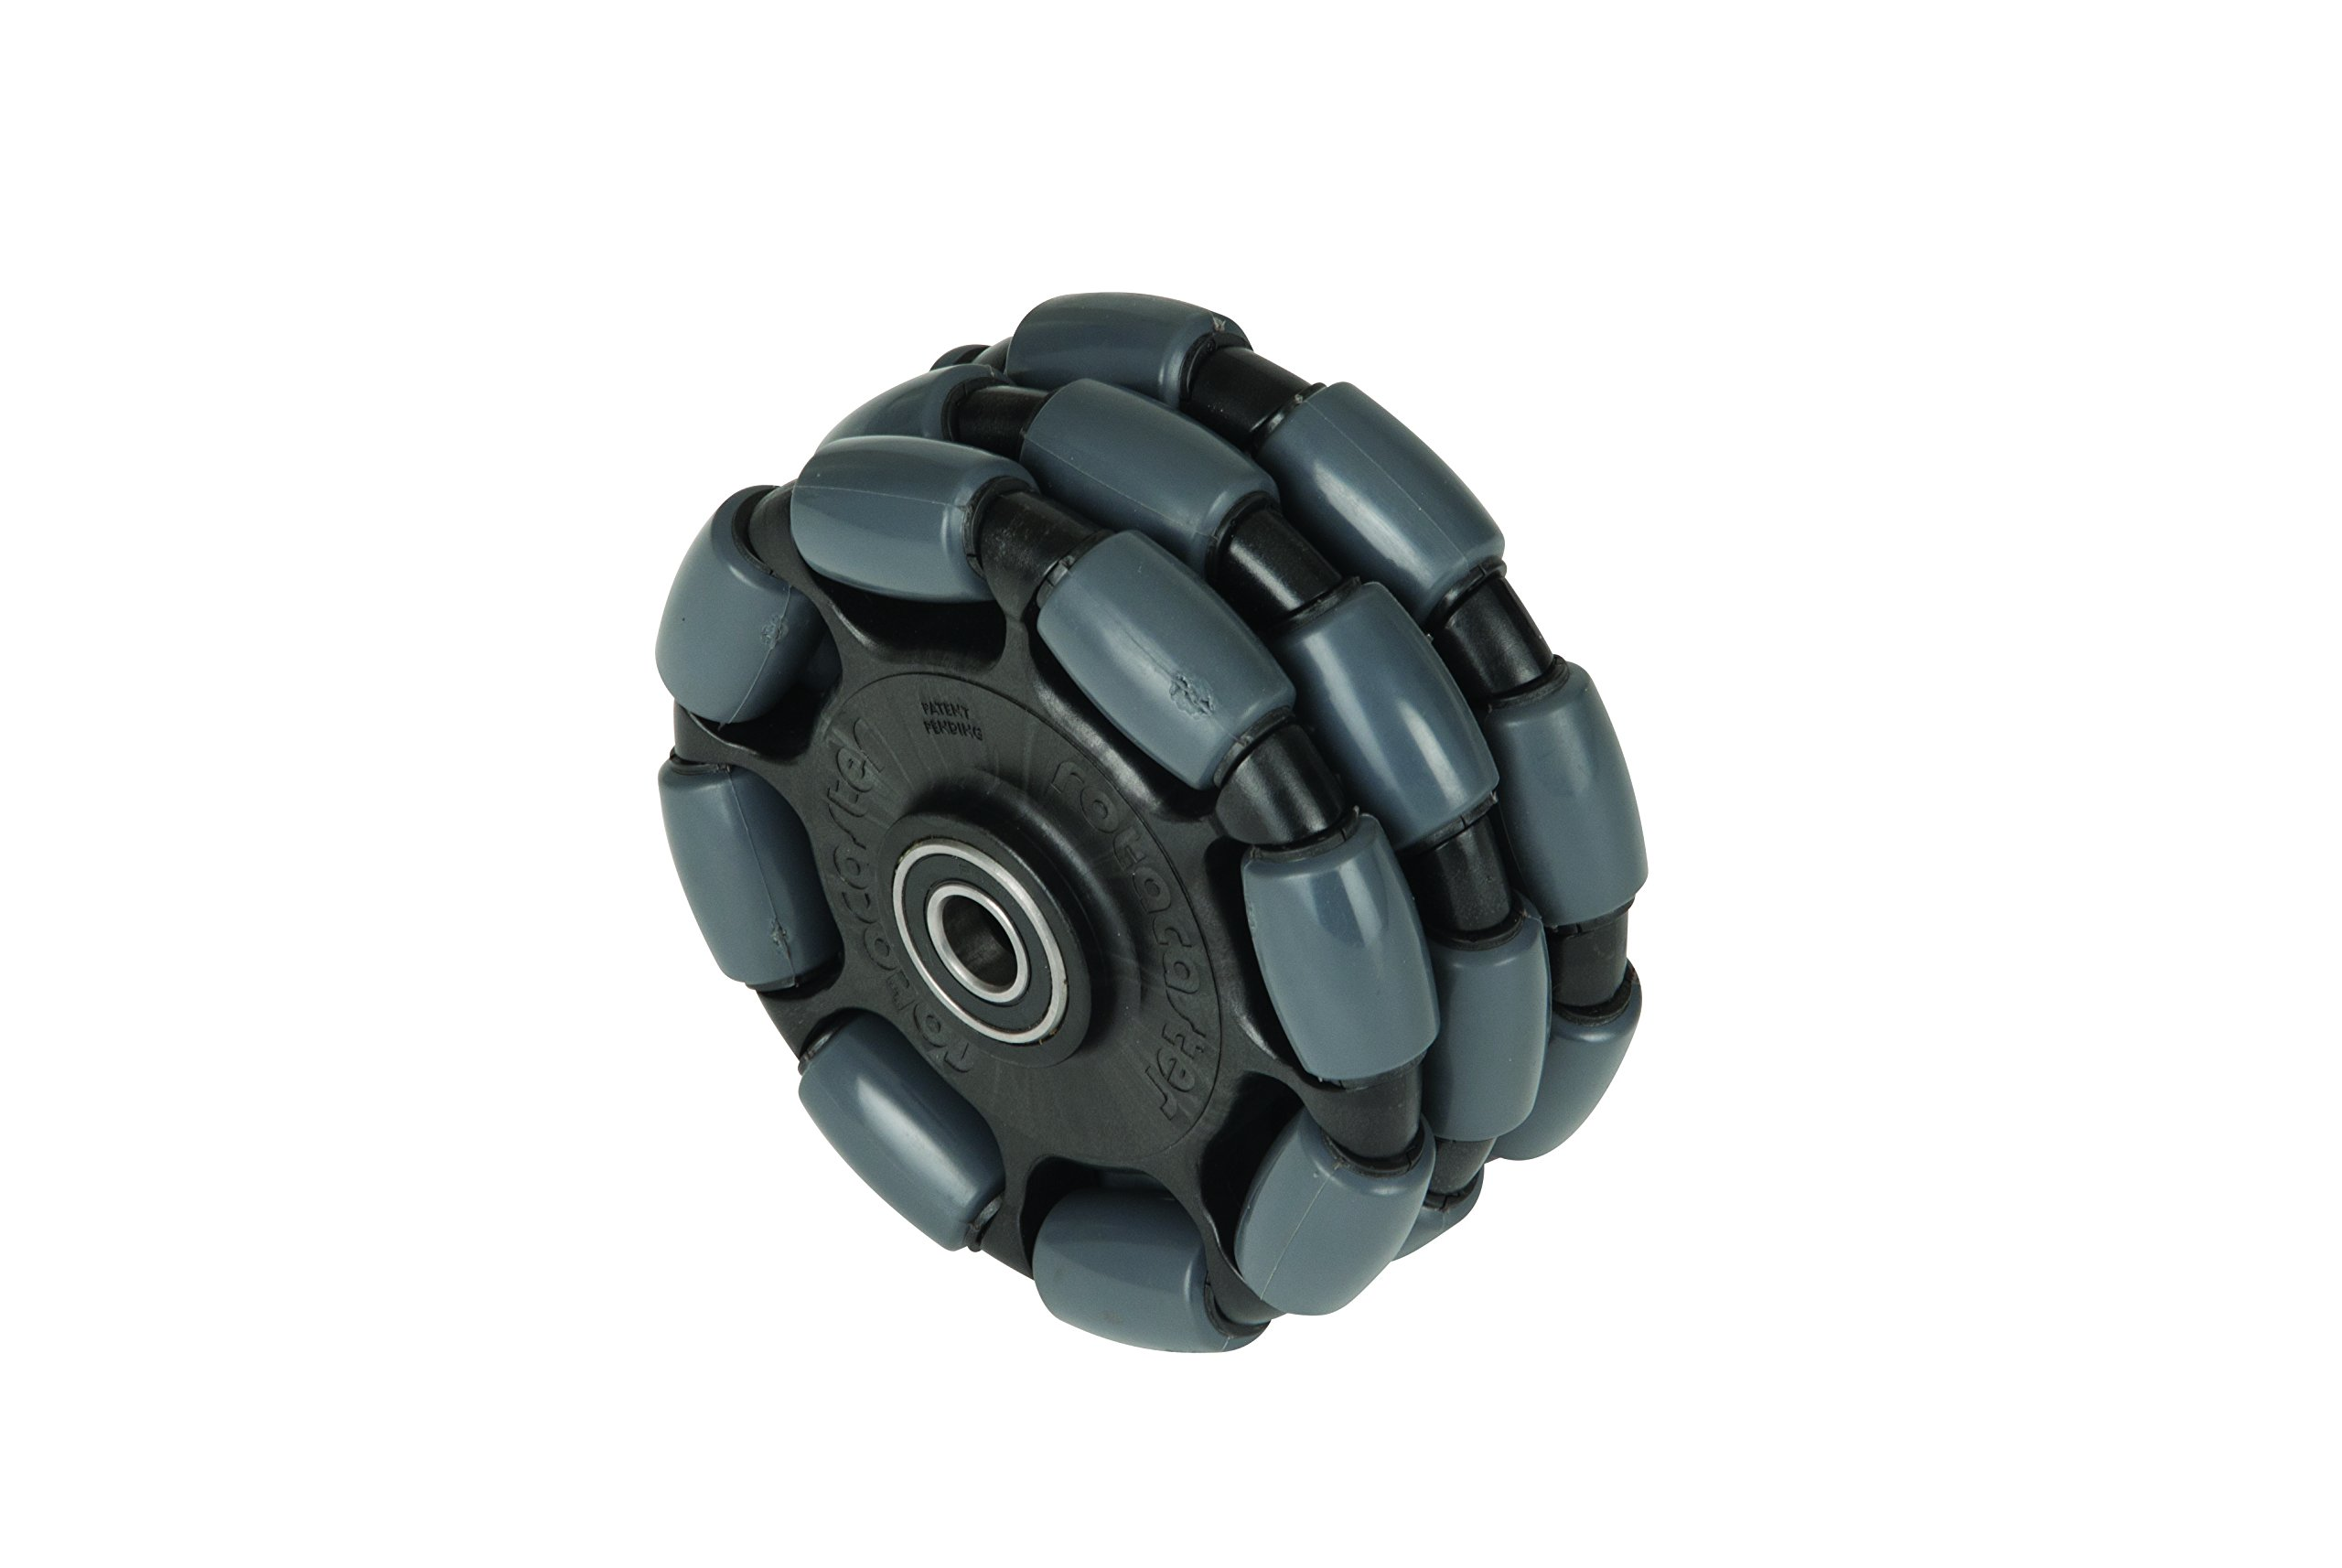 Magliner 130503 Rotacaster Triple Row Multi-Directional Wheels for Self-Stabilizing Hand Truck